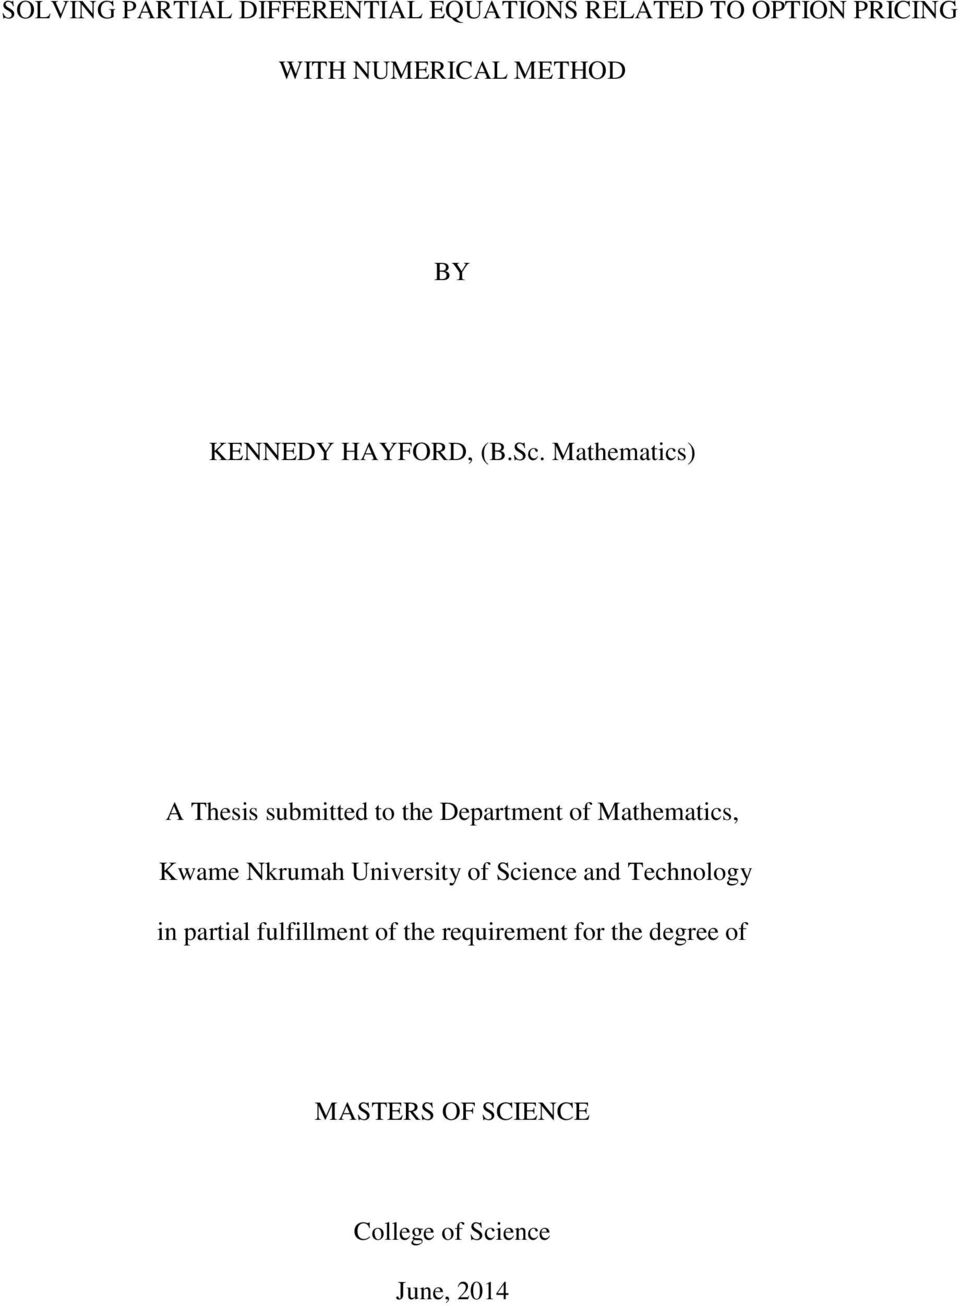 Mathematics) A Thesis submitted to the Department of Mathematics, Kwame Nkrumah